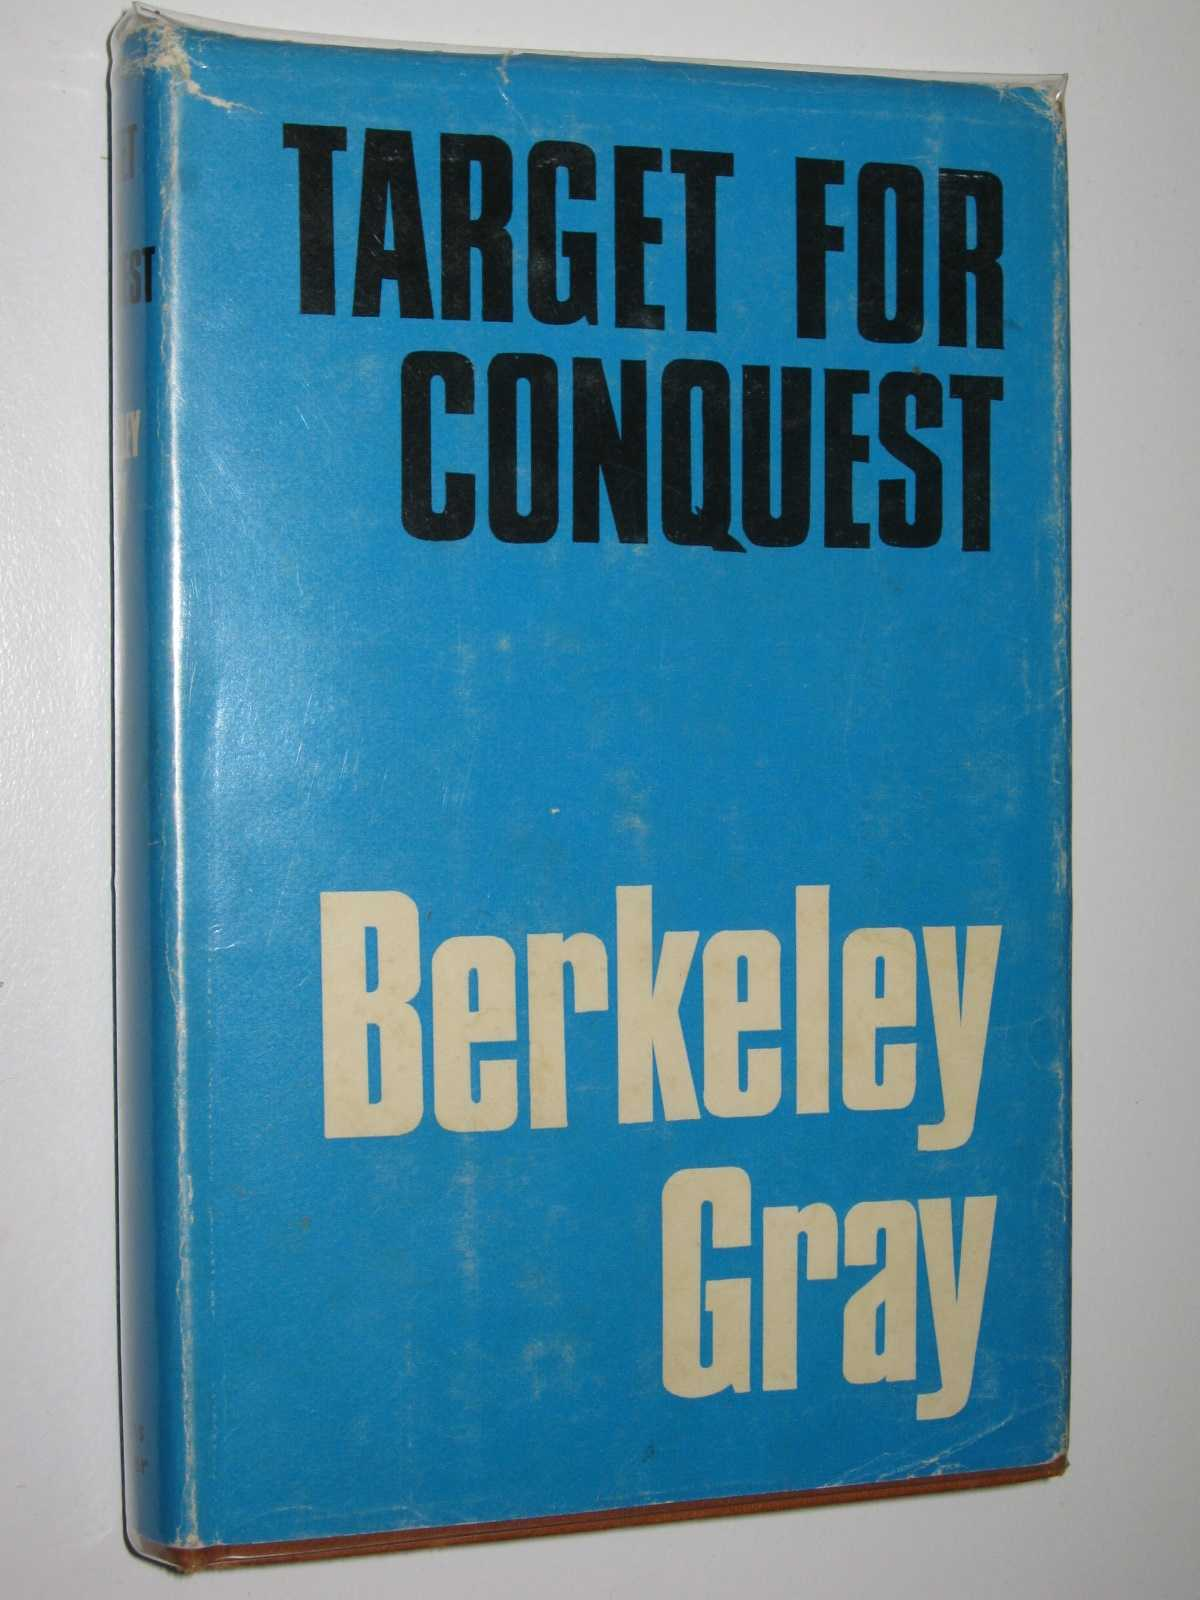 Target for Conquest, Gray, Berkeley